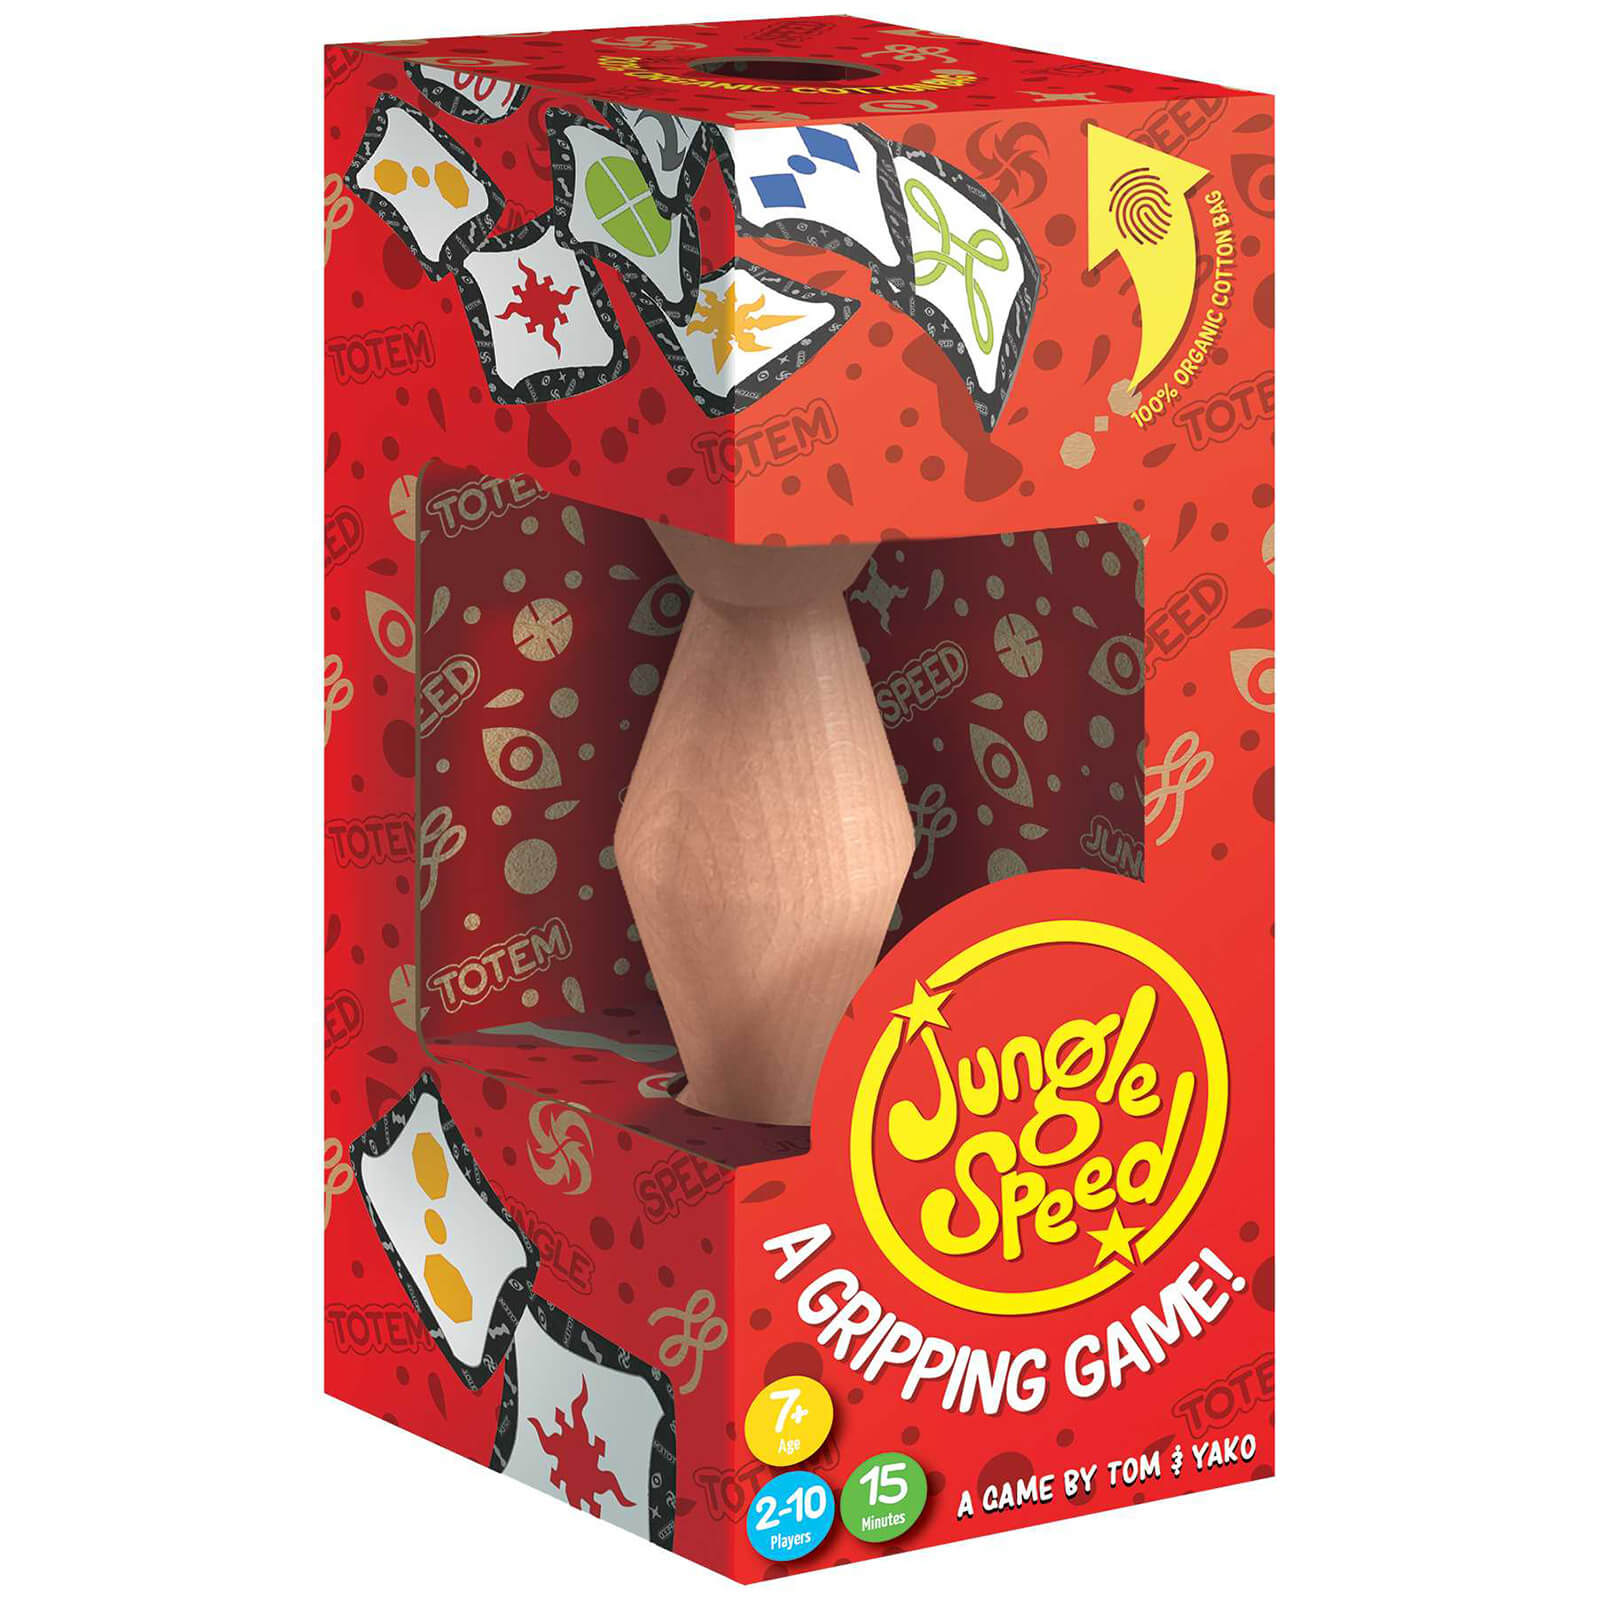 Image of Jungle Speed Card Game (Eco Box)